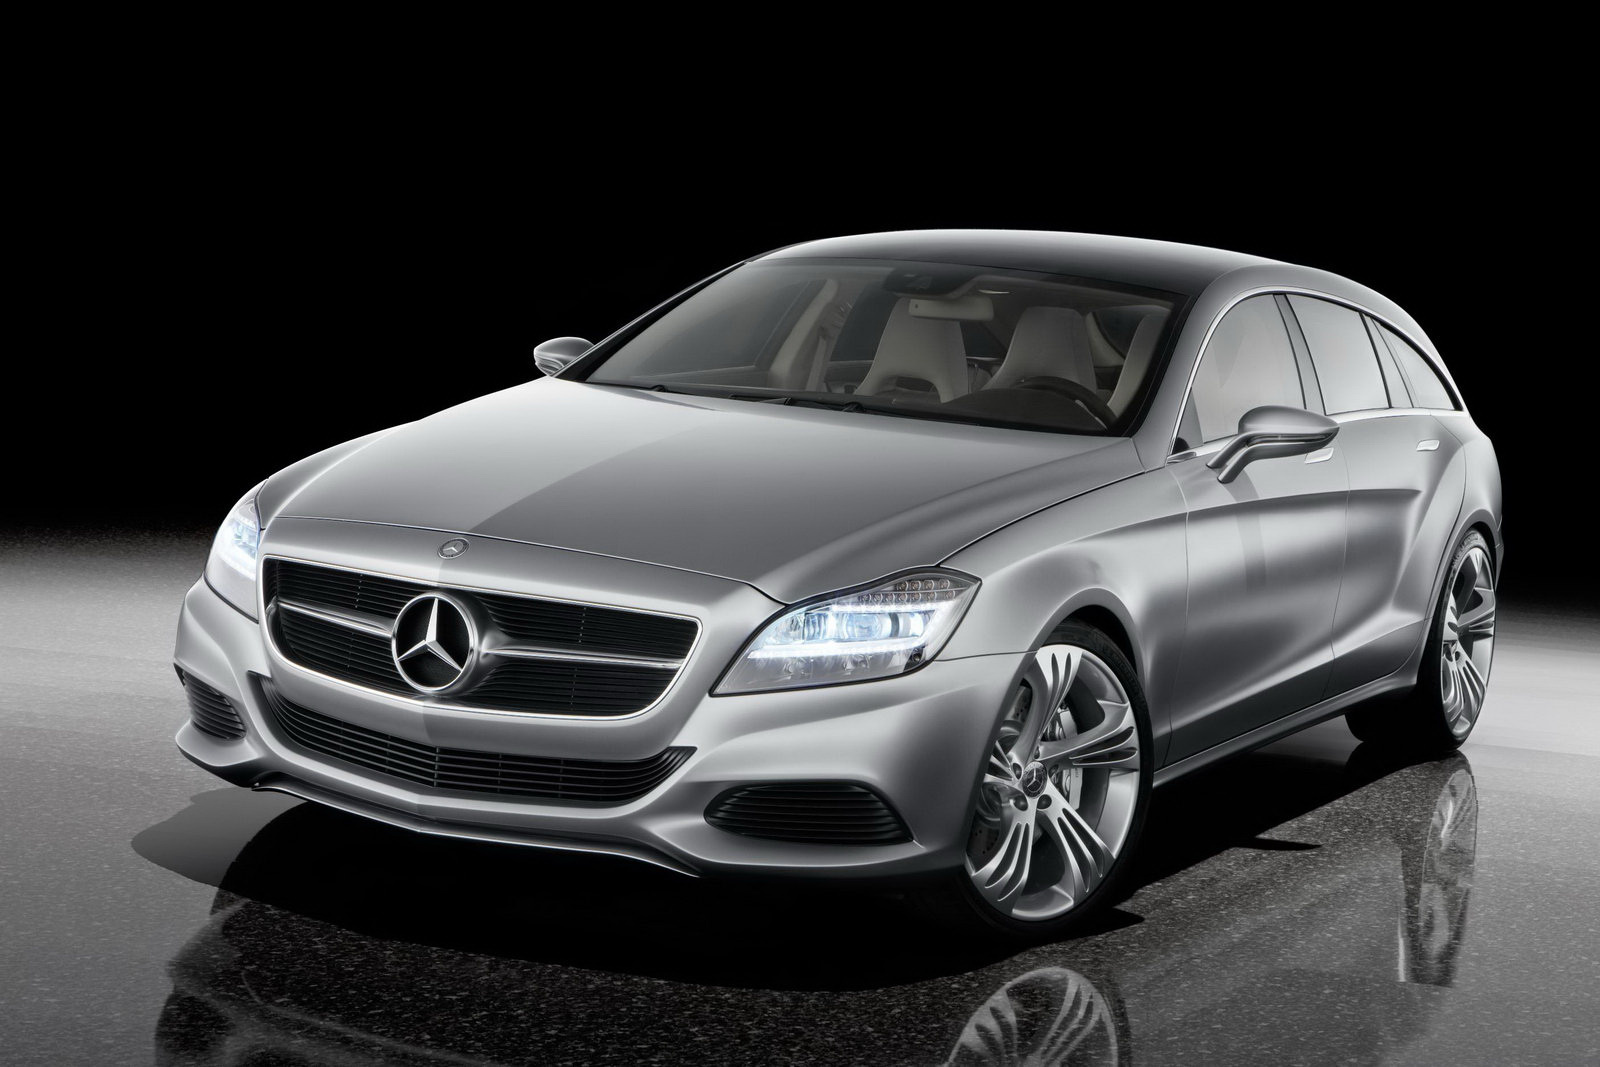 2014 mercedes benz clc with shooting brake attachment. Black Bedroom Furniture Sets. Home Design Ideas